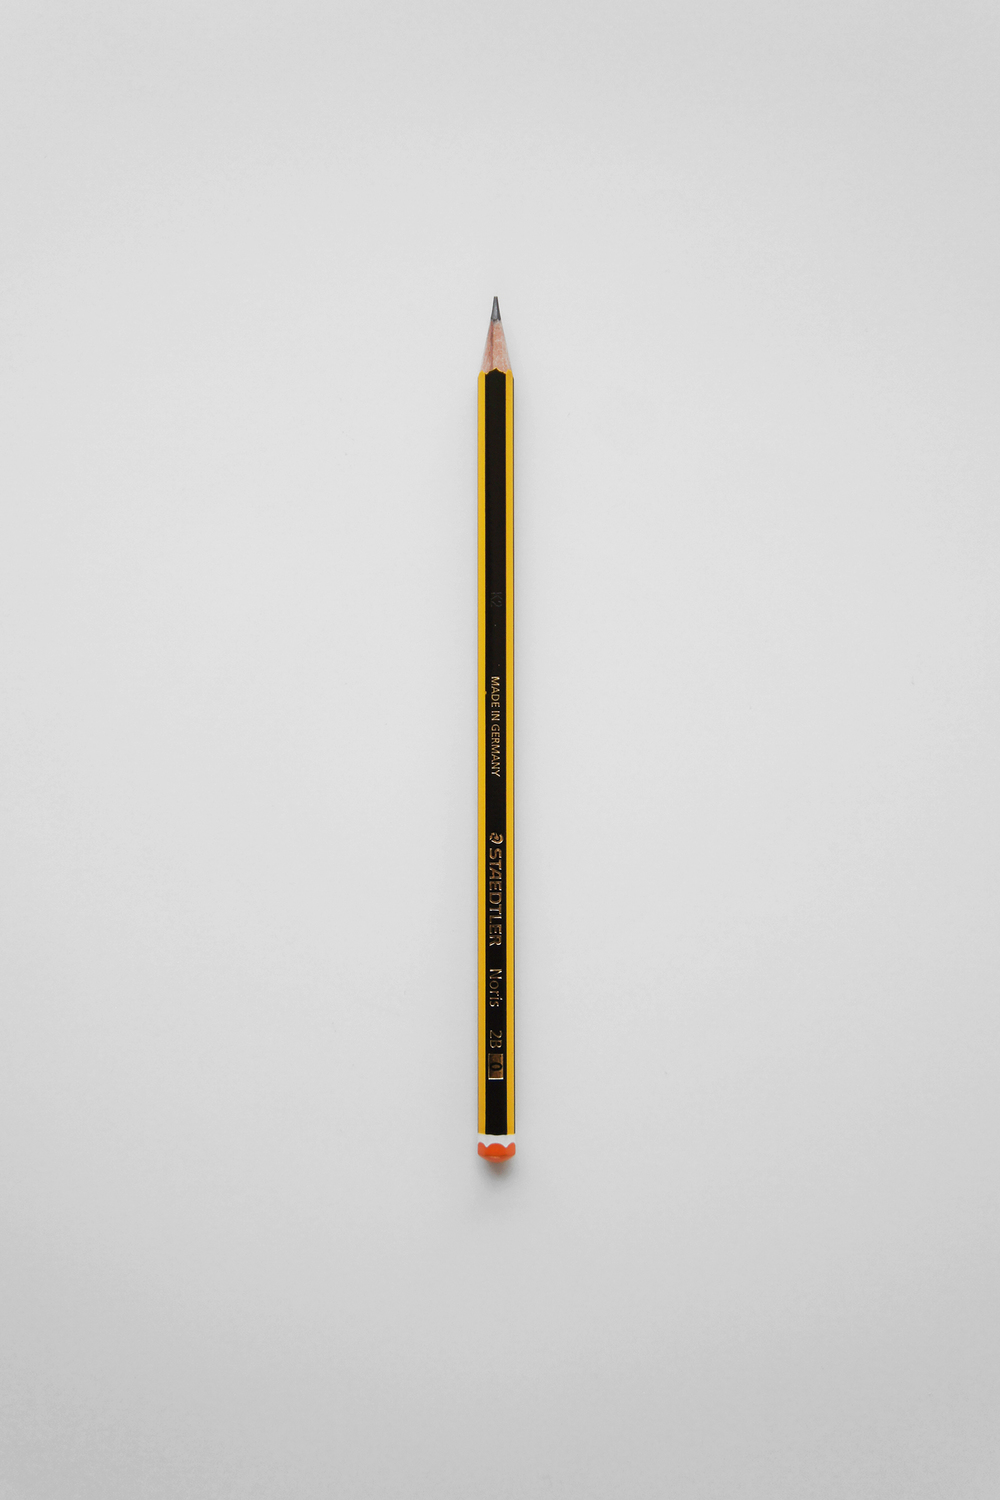 Pencil / wood & graphite / Staedtler / 1901